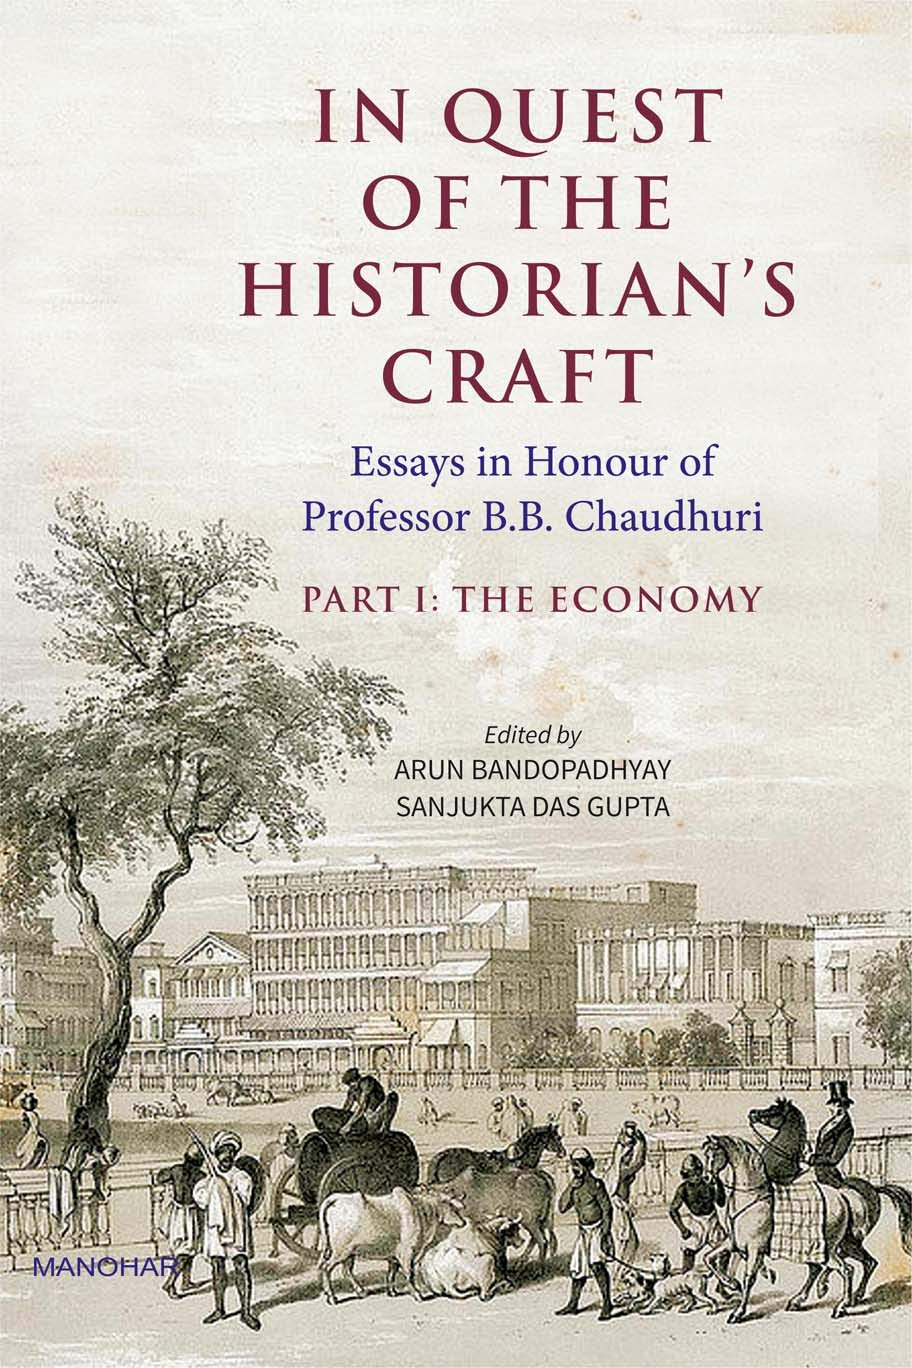 IN QUEST OF THE HISTORIAN'S CRAFT: PART I THE ECONOMY